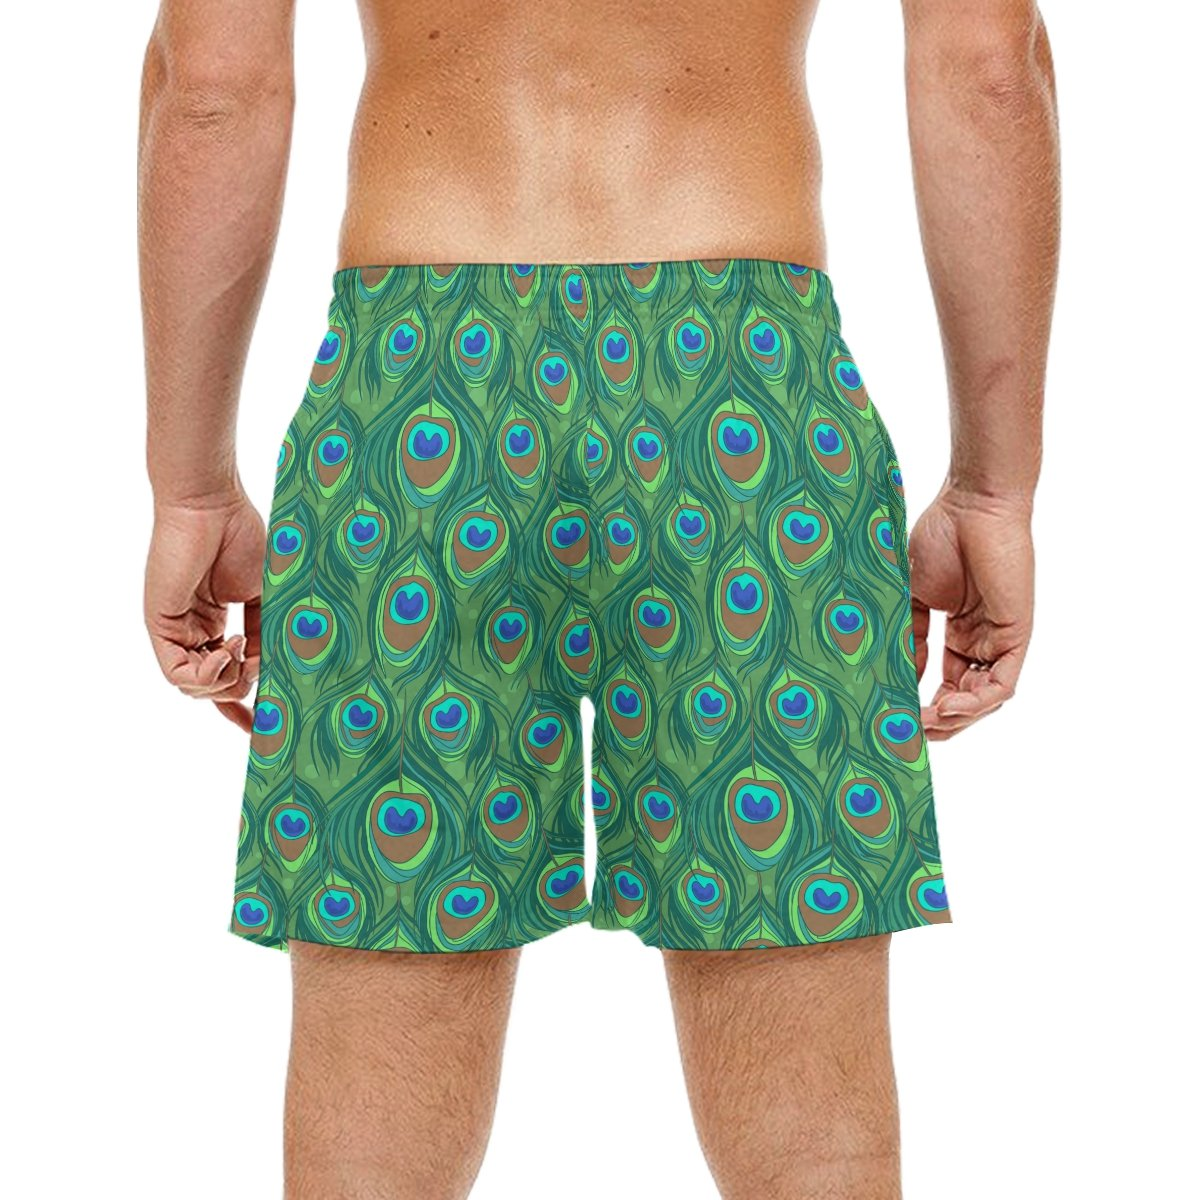 c1e571b91d3ea COOSUN Men's Colorful Peacock Feather Beach Board Shorts Quick Dry Swim  Trunk: Amazon.co.uk: Clothing